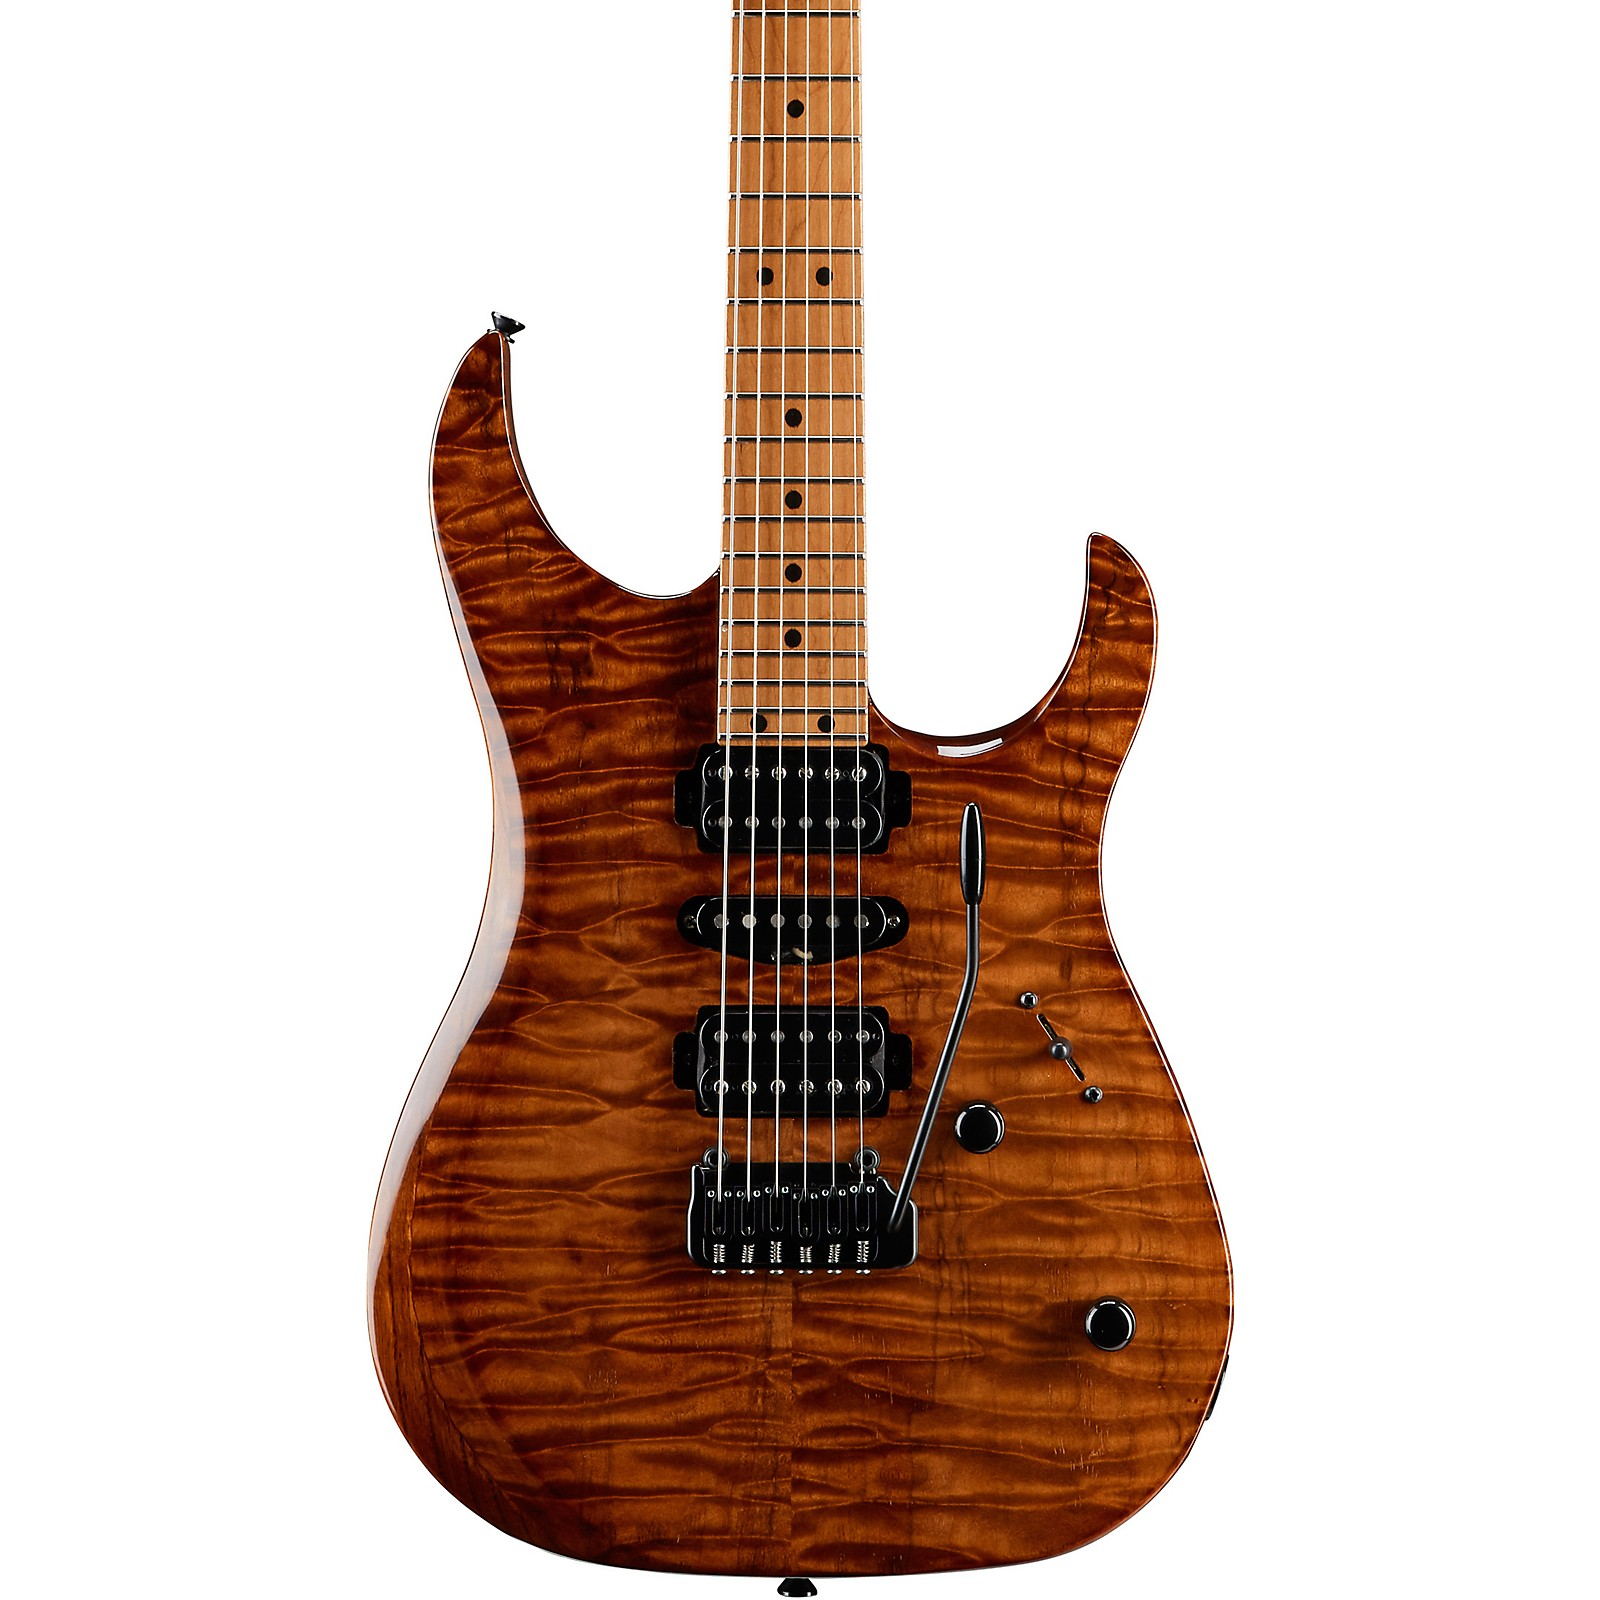 LsL Instruments XT4-DX 24 Fret Exotic HSH Roasted Quilt Maple Top Electric Guitar